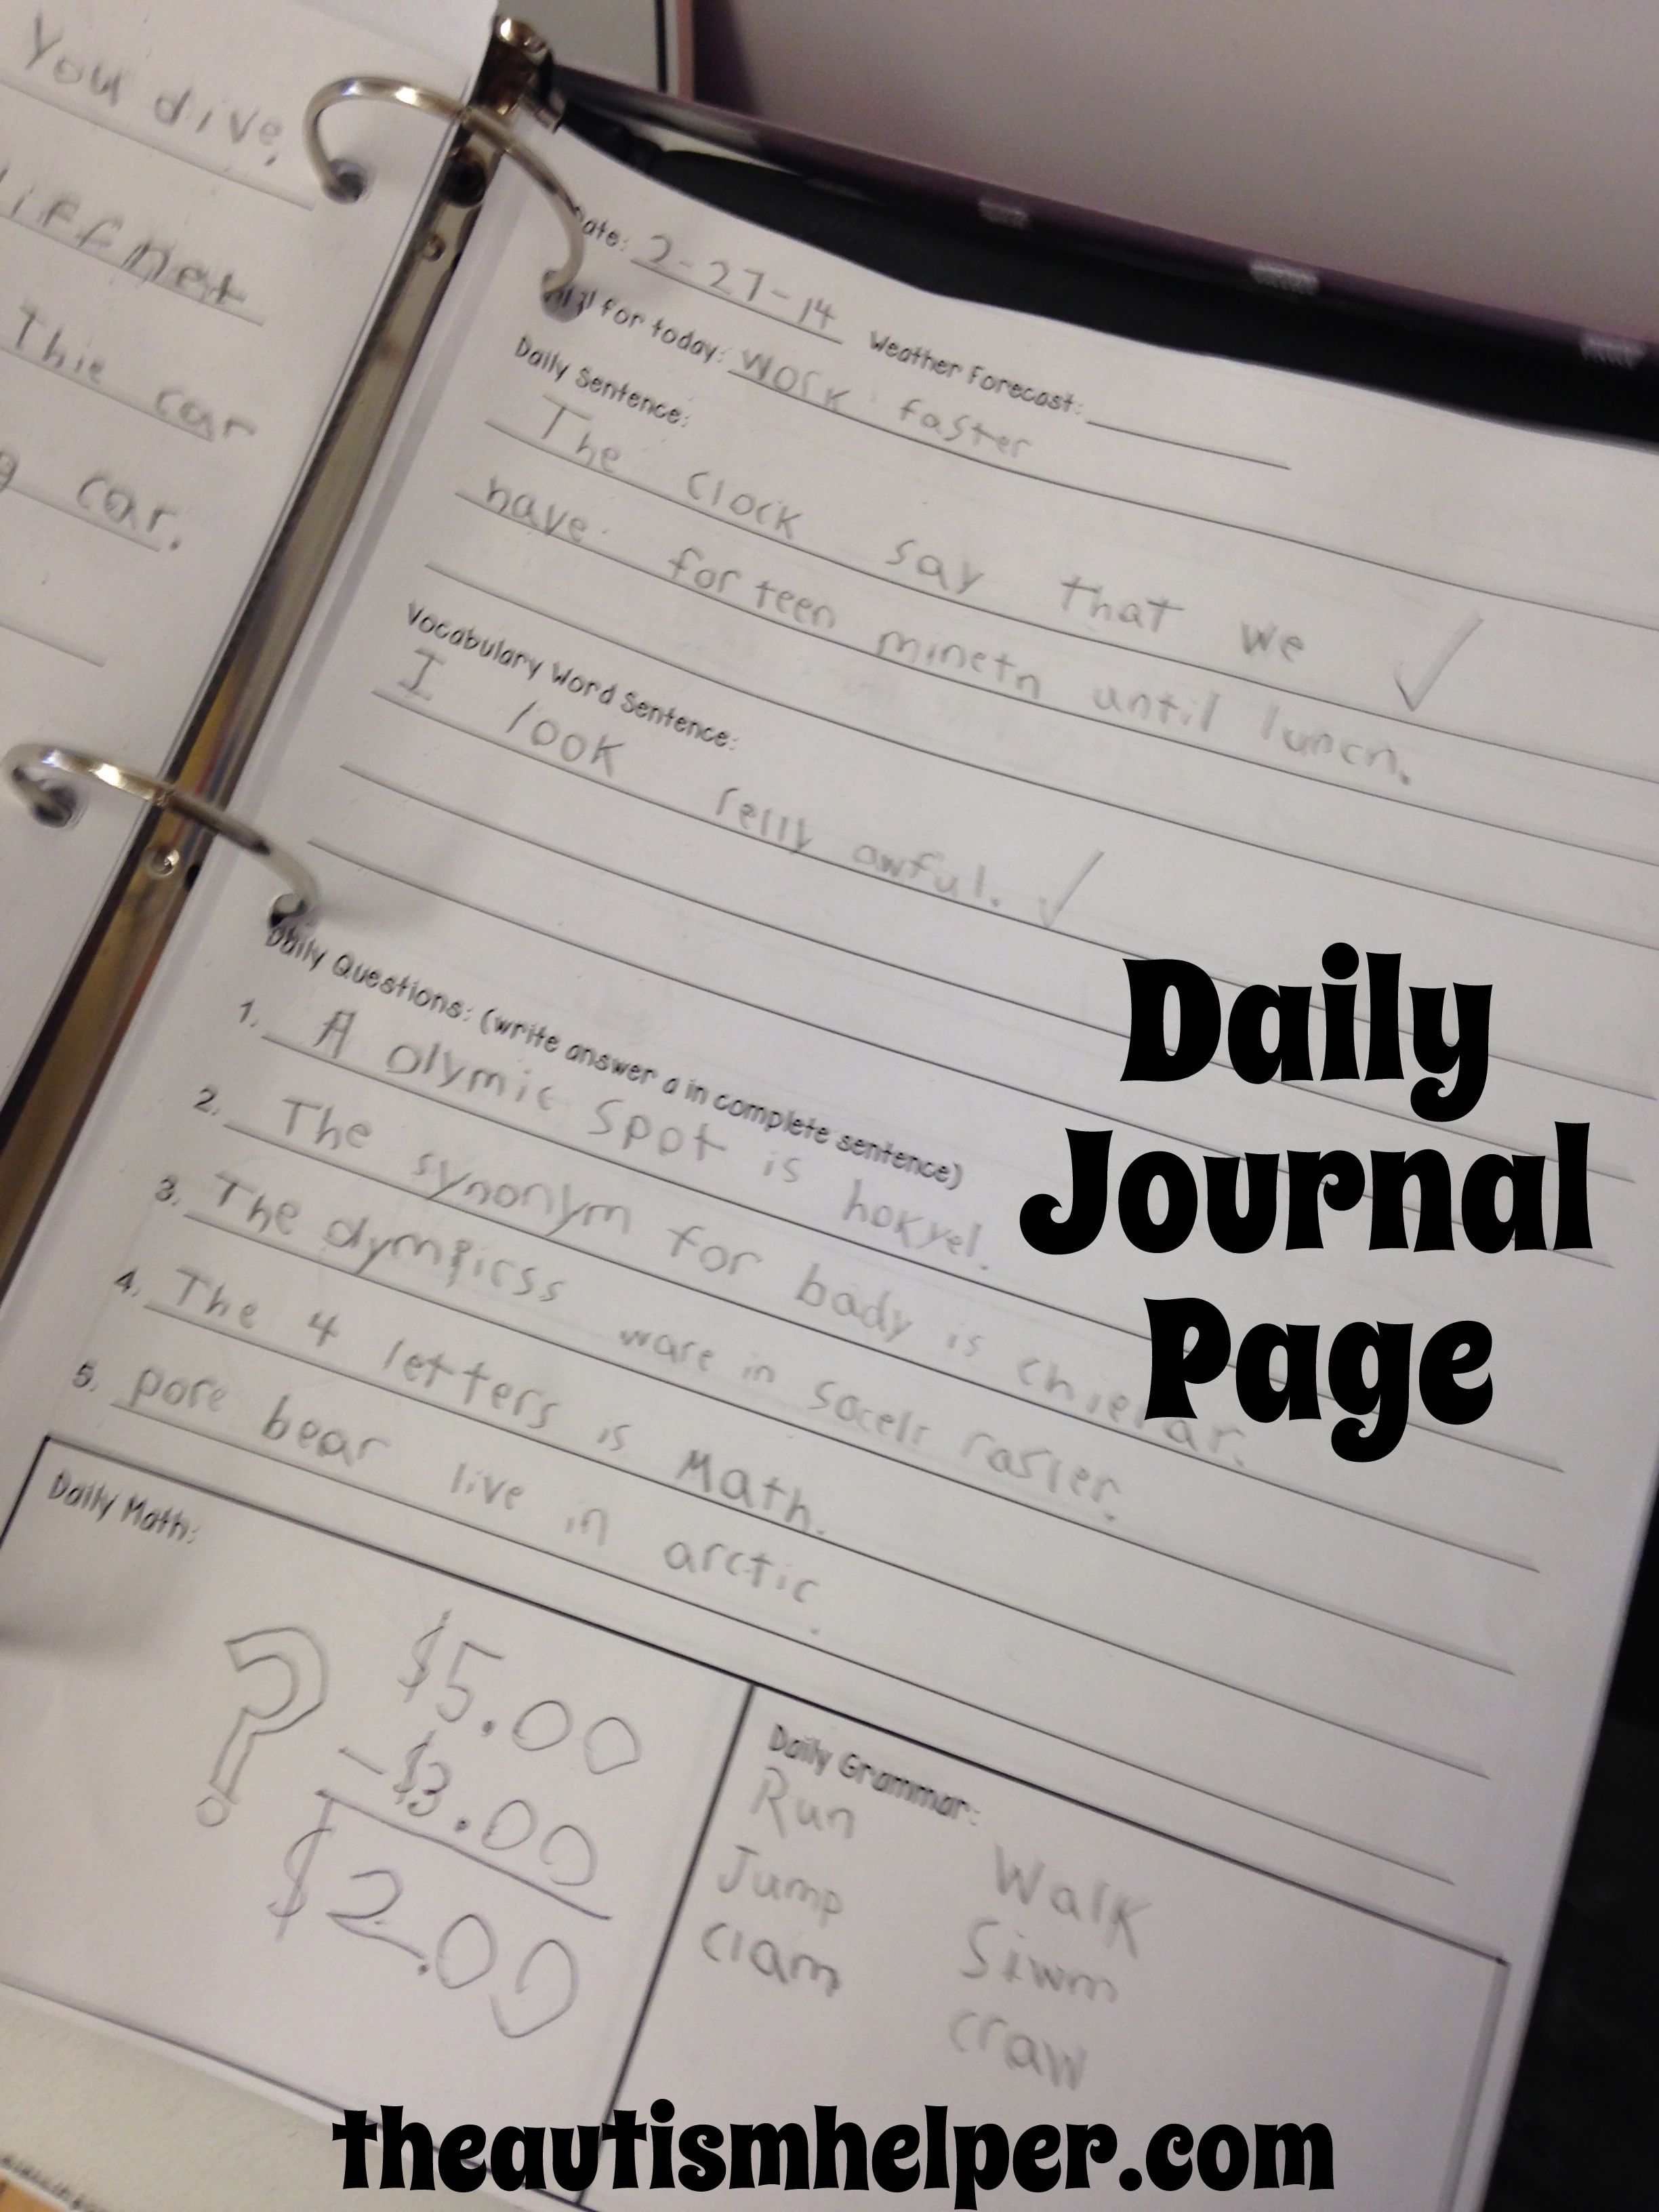 New Daily Journal Page